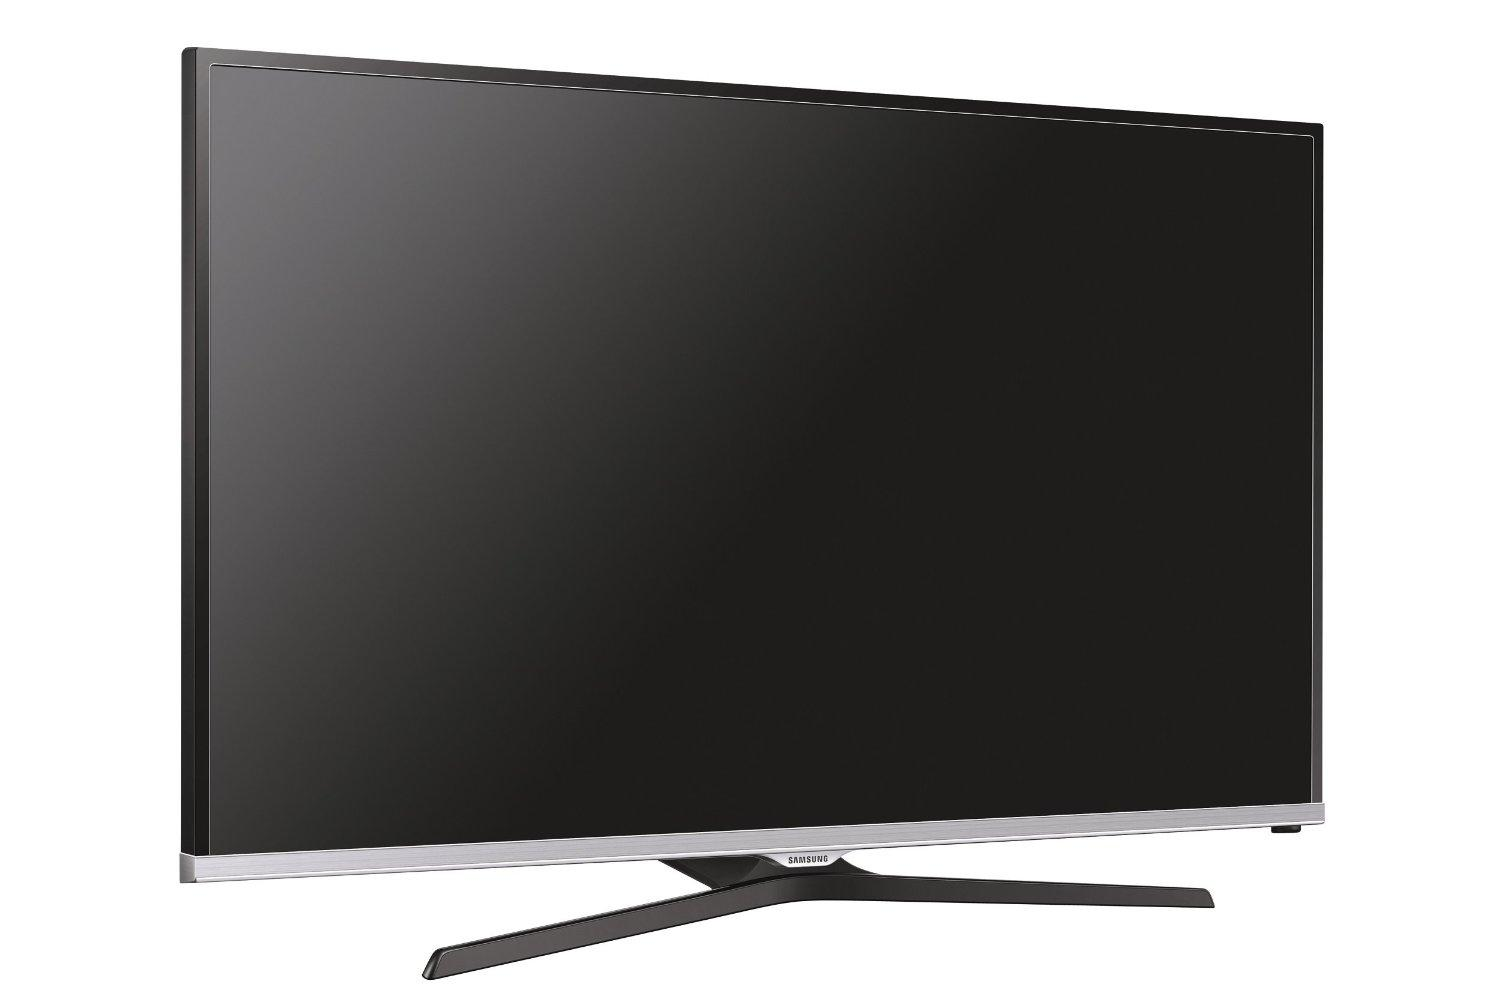 samsung ue40j5150 101 cm 40 zoll fernseher full hd triple tuner samsung. Black Bedroom Furniture Sets. Home Design Ideas